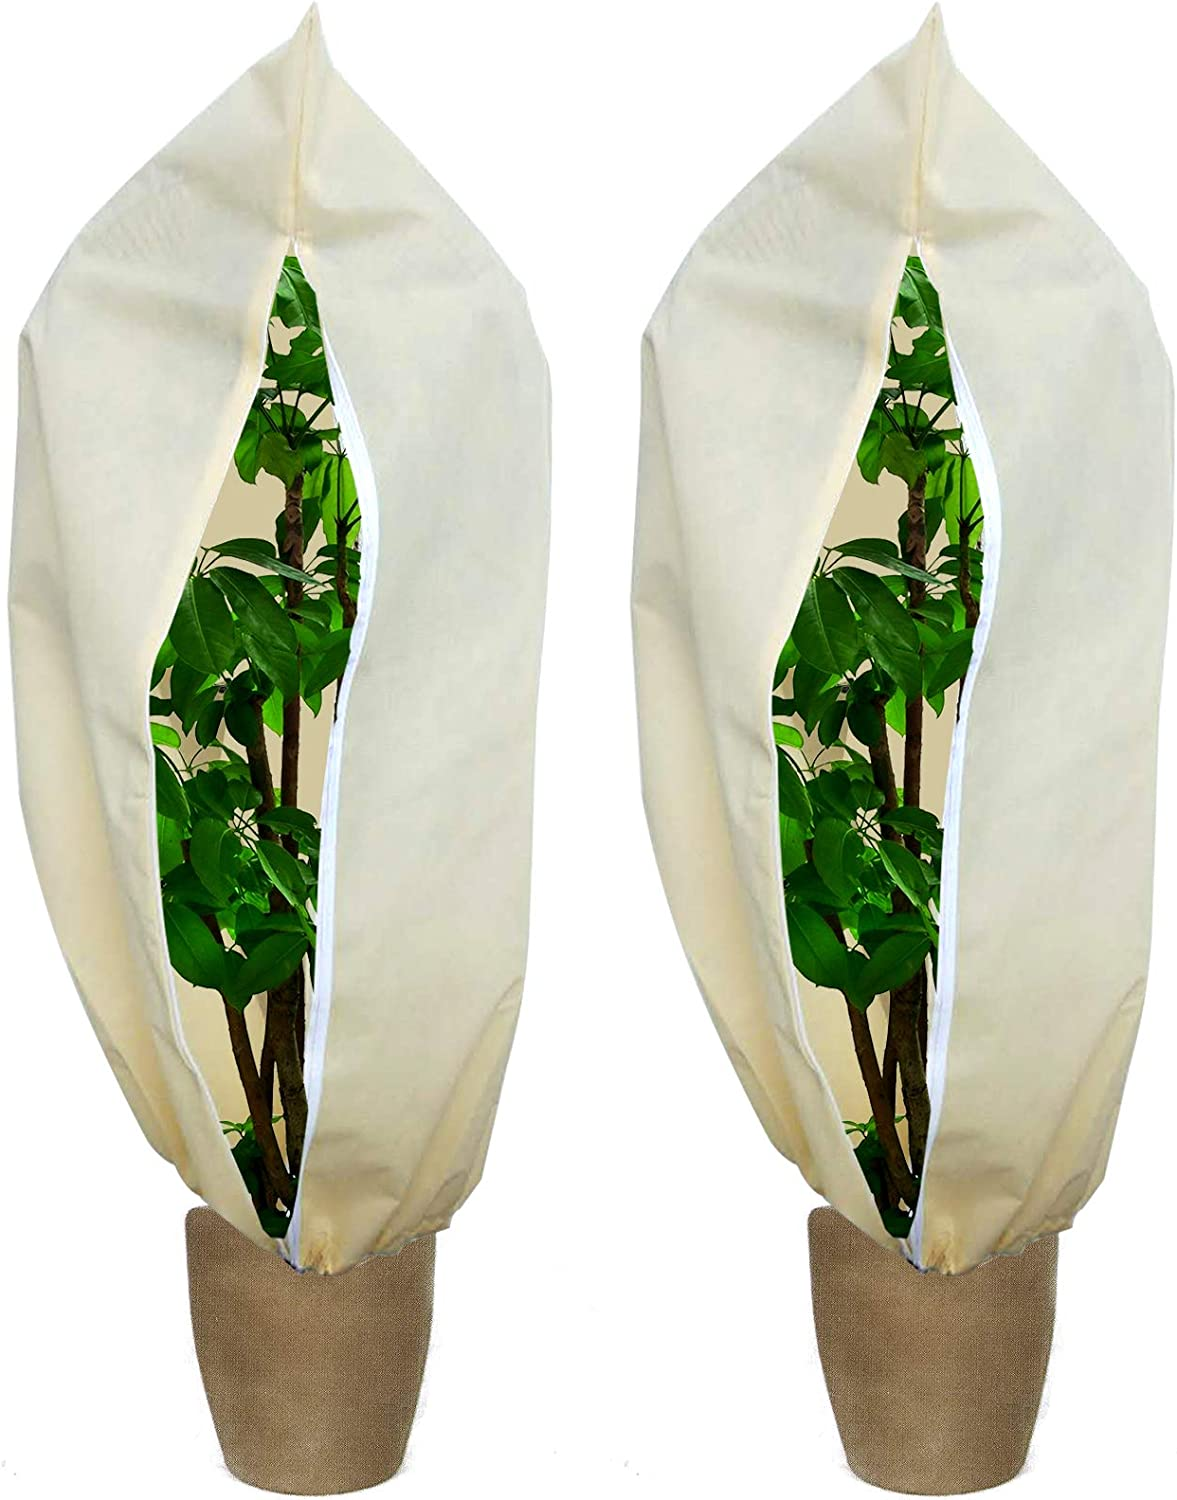 EBaokuup 2 Pack Winter Zipper Plant Covers with Drawstring - 47.2